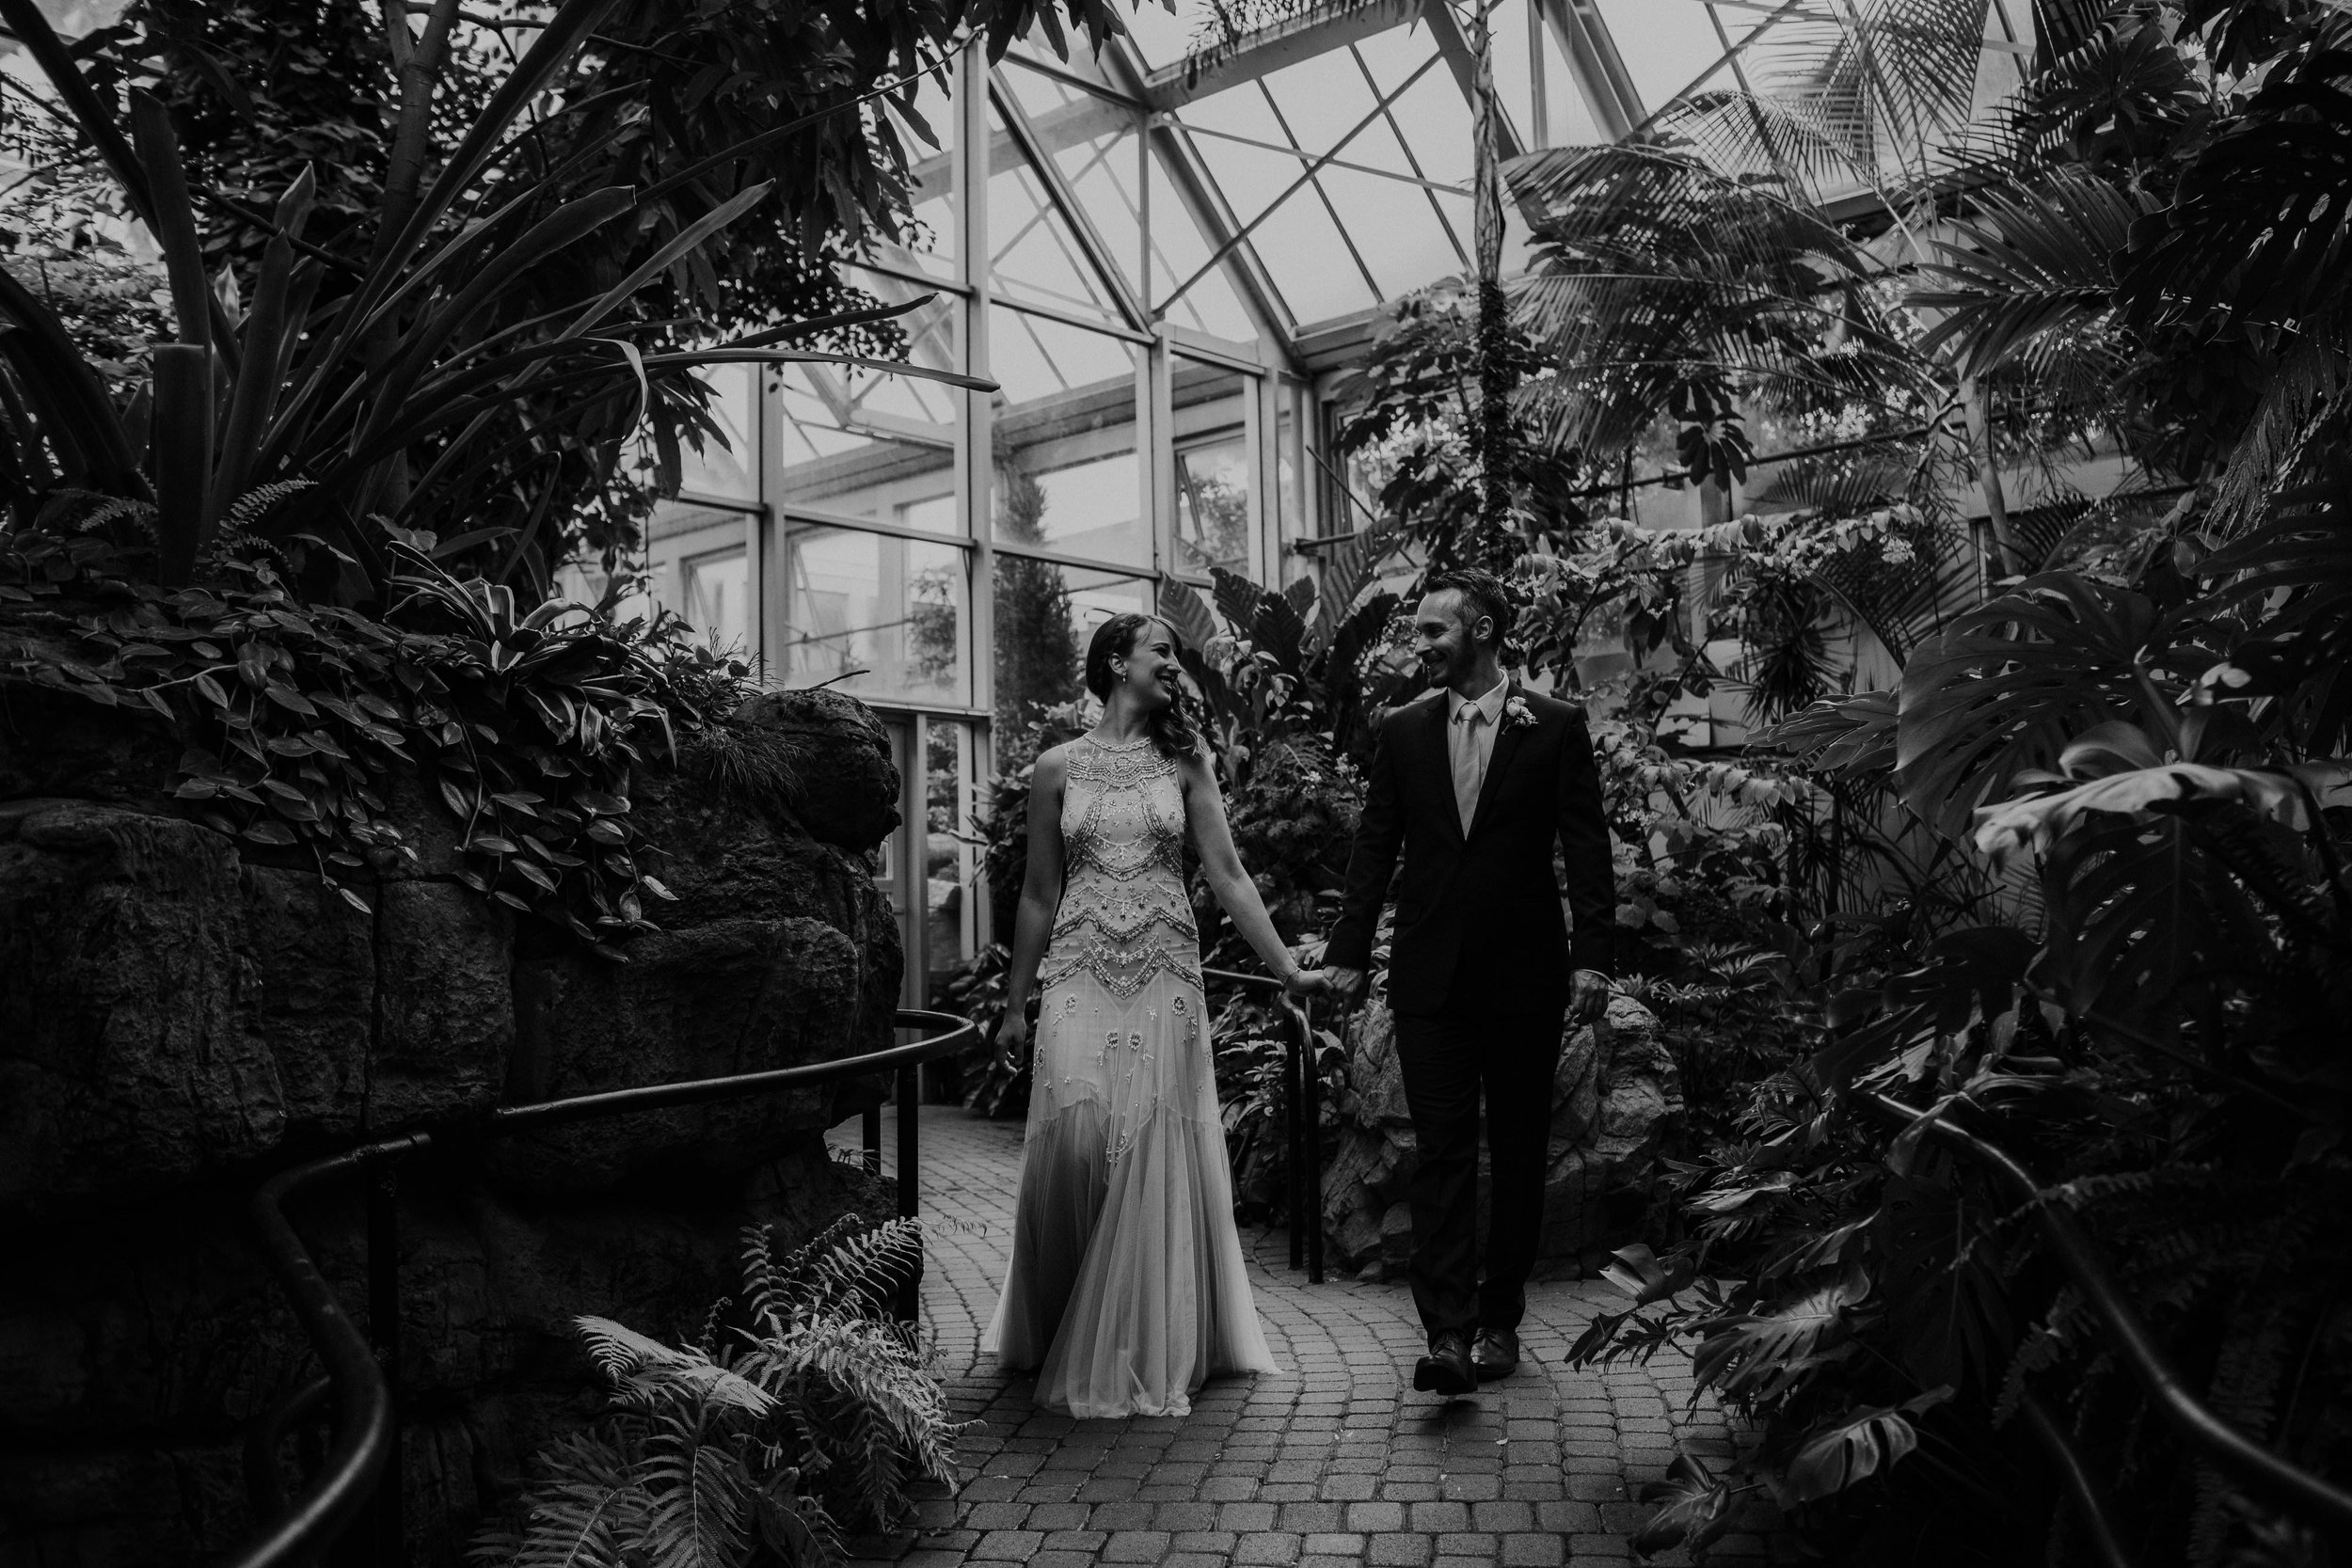 franklin park conservatory wedding columbus ohio wedding photographer grace e jones photography118.jpg